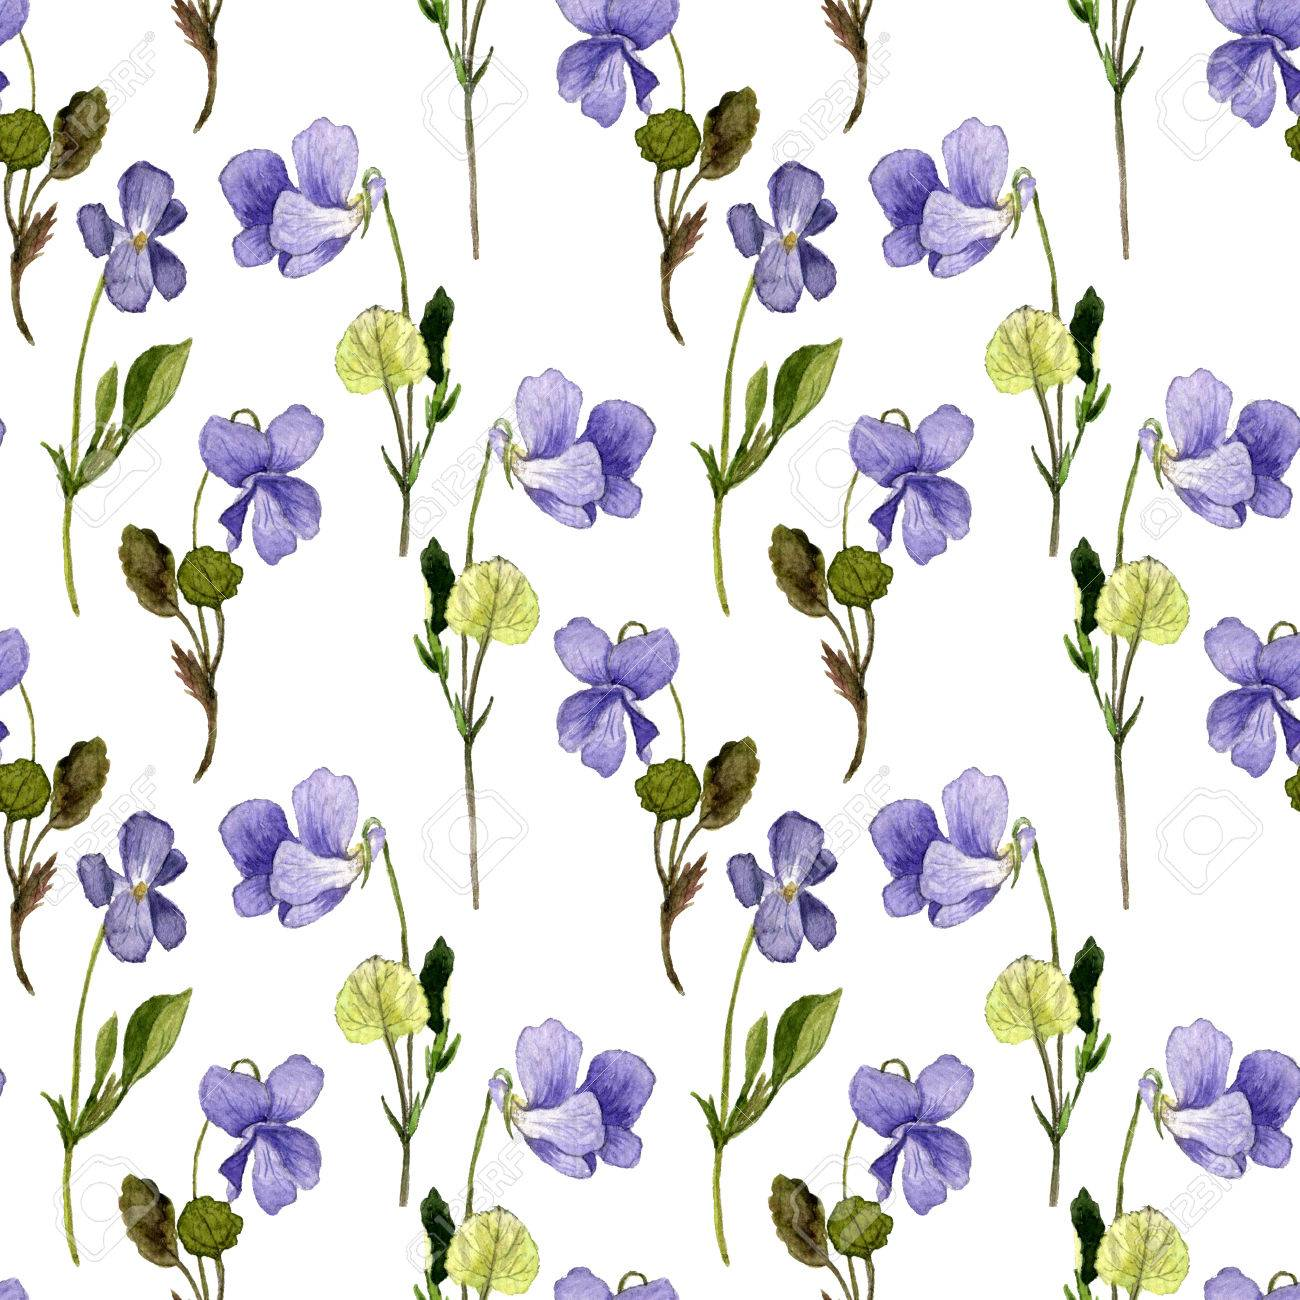 1300x1300 Floral Seamless Pattern With Watercolor Drawing Wild Flowers